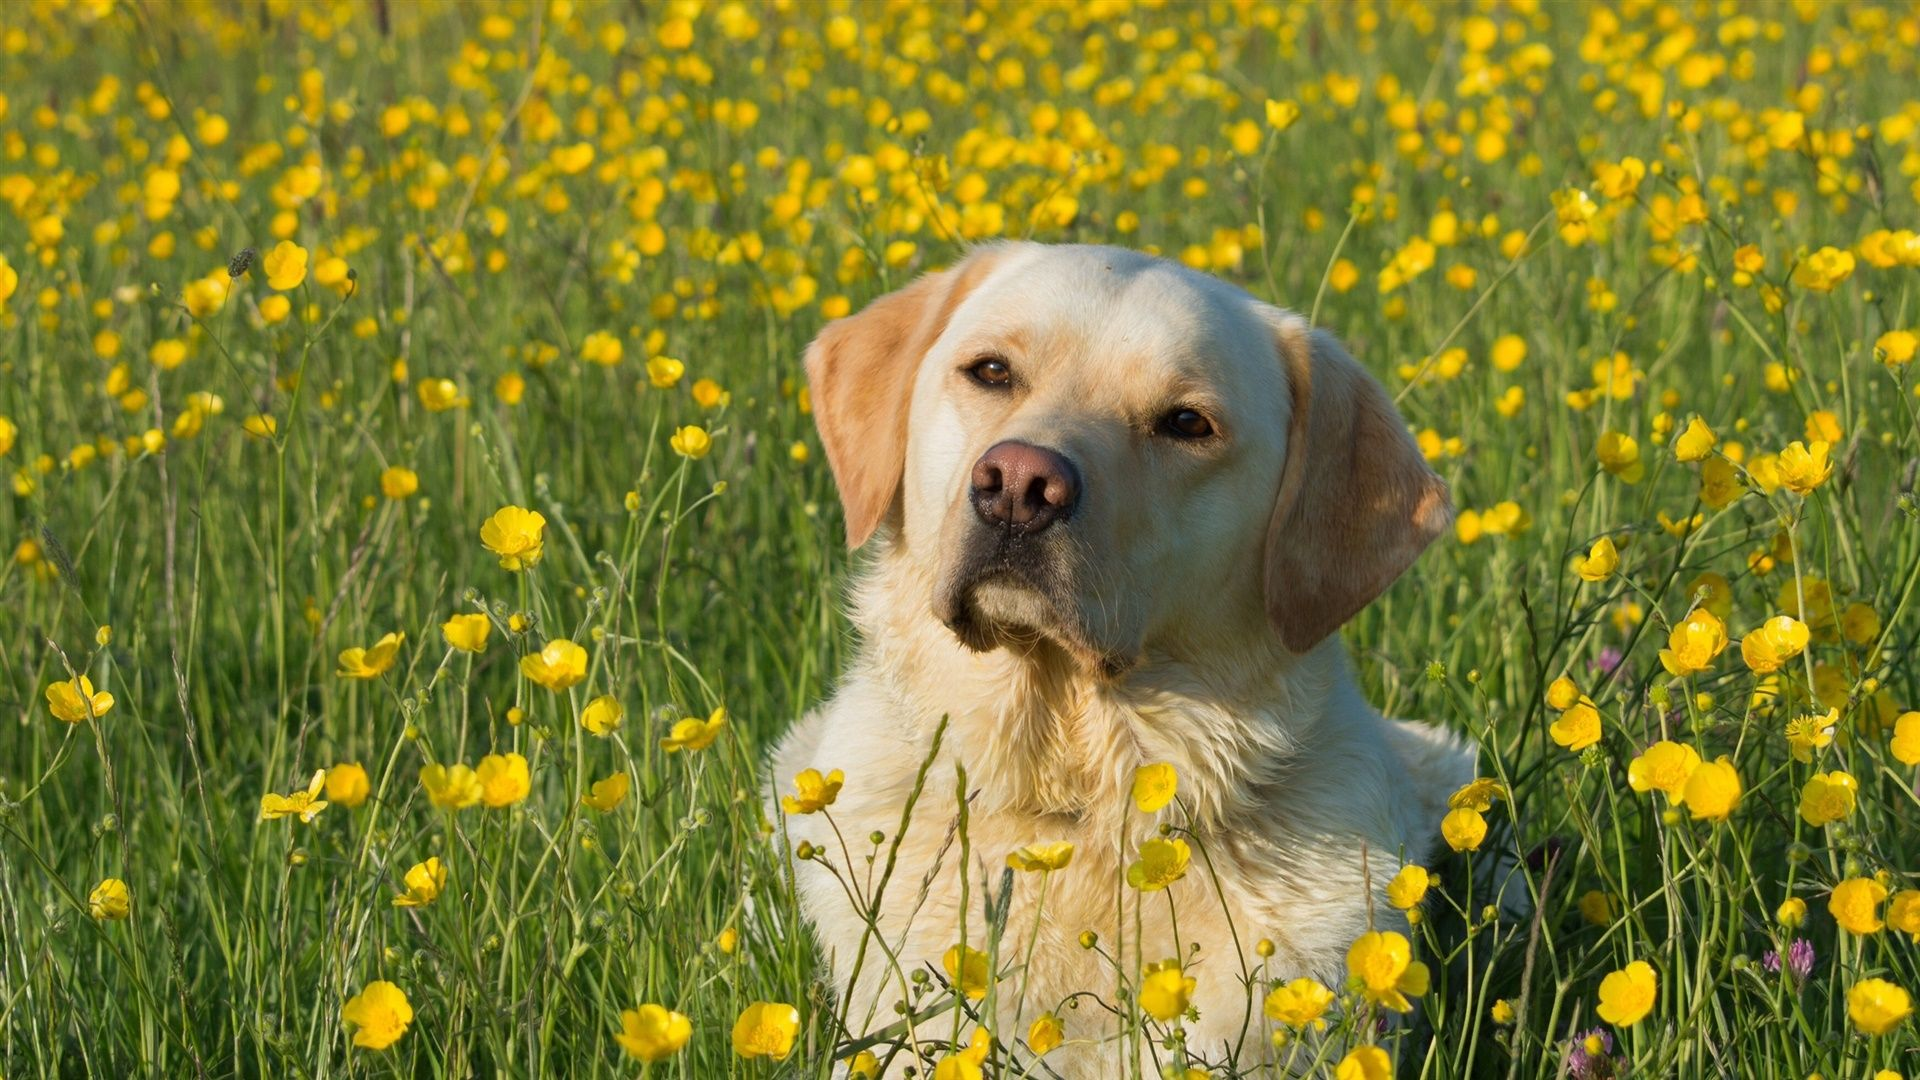 Labrador In The Grass Pictures